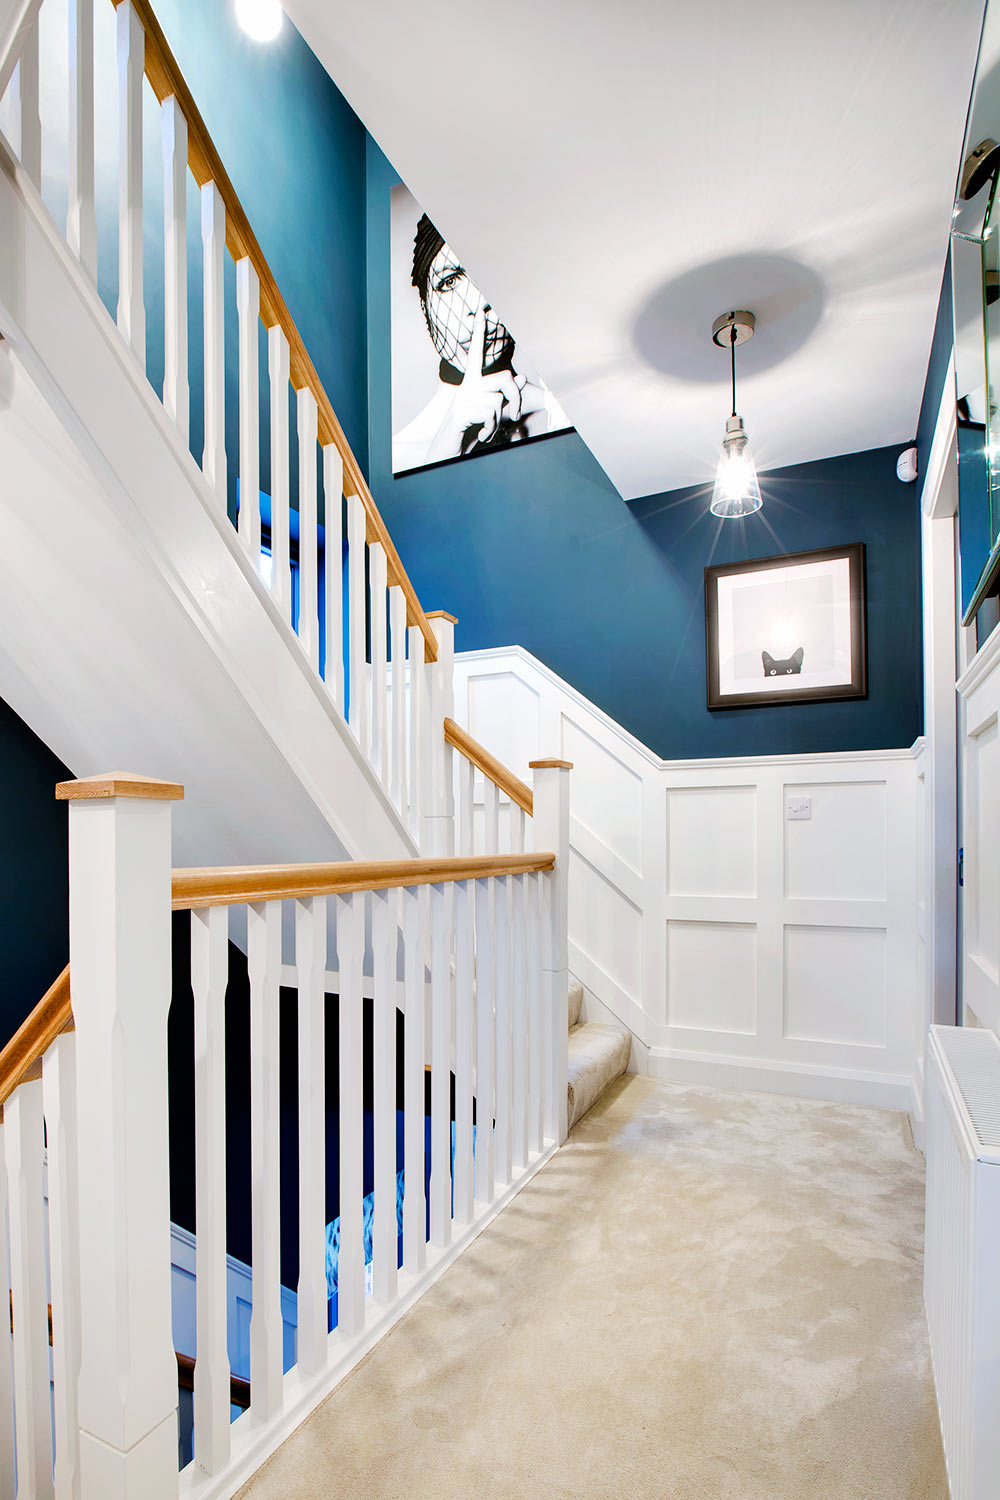 Hallway and landing interior design